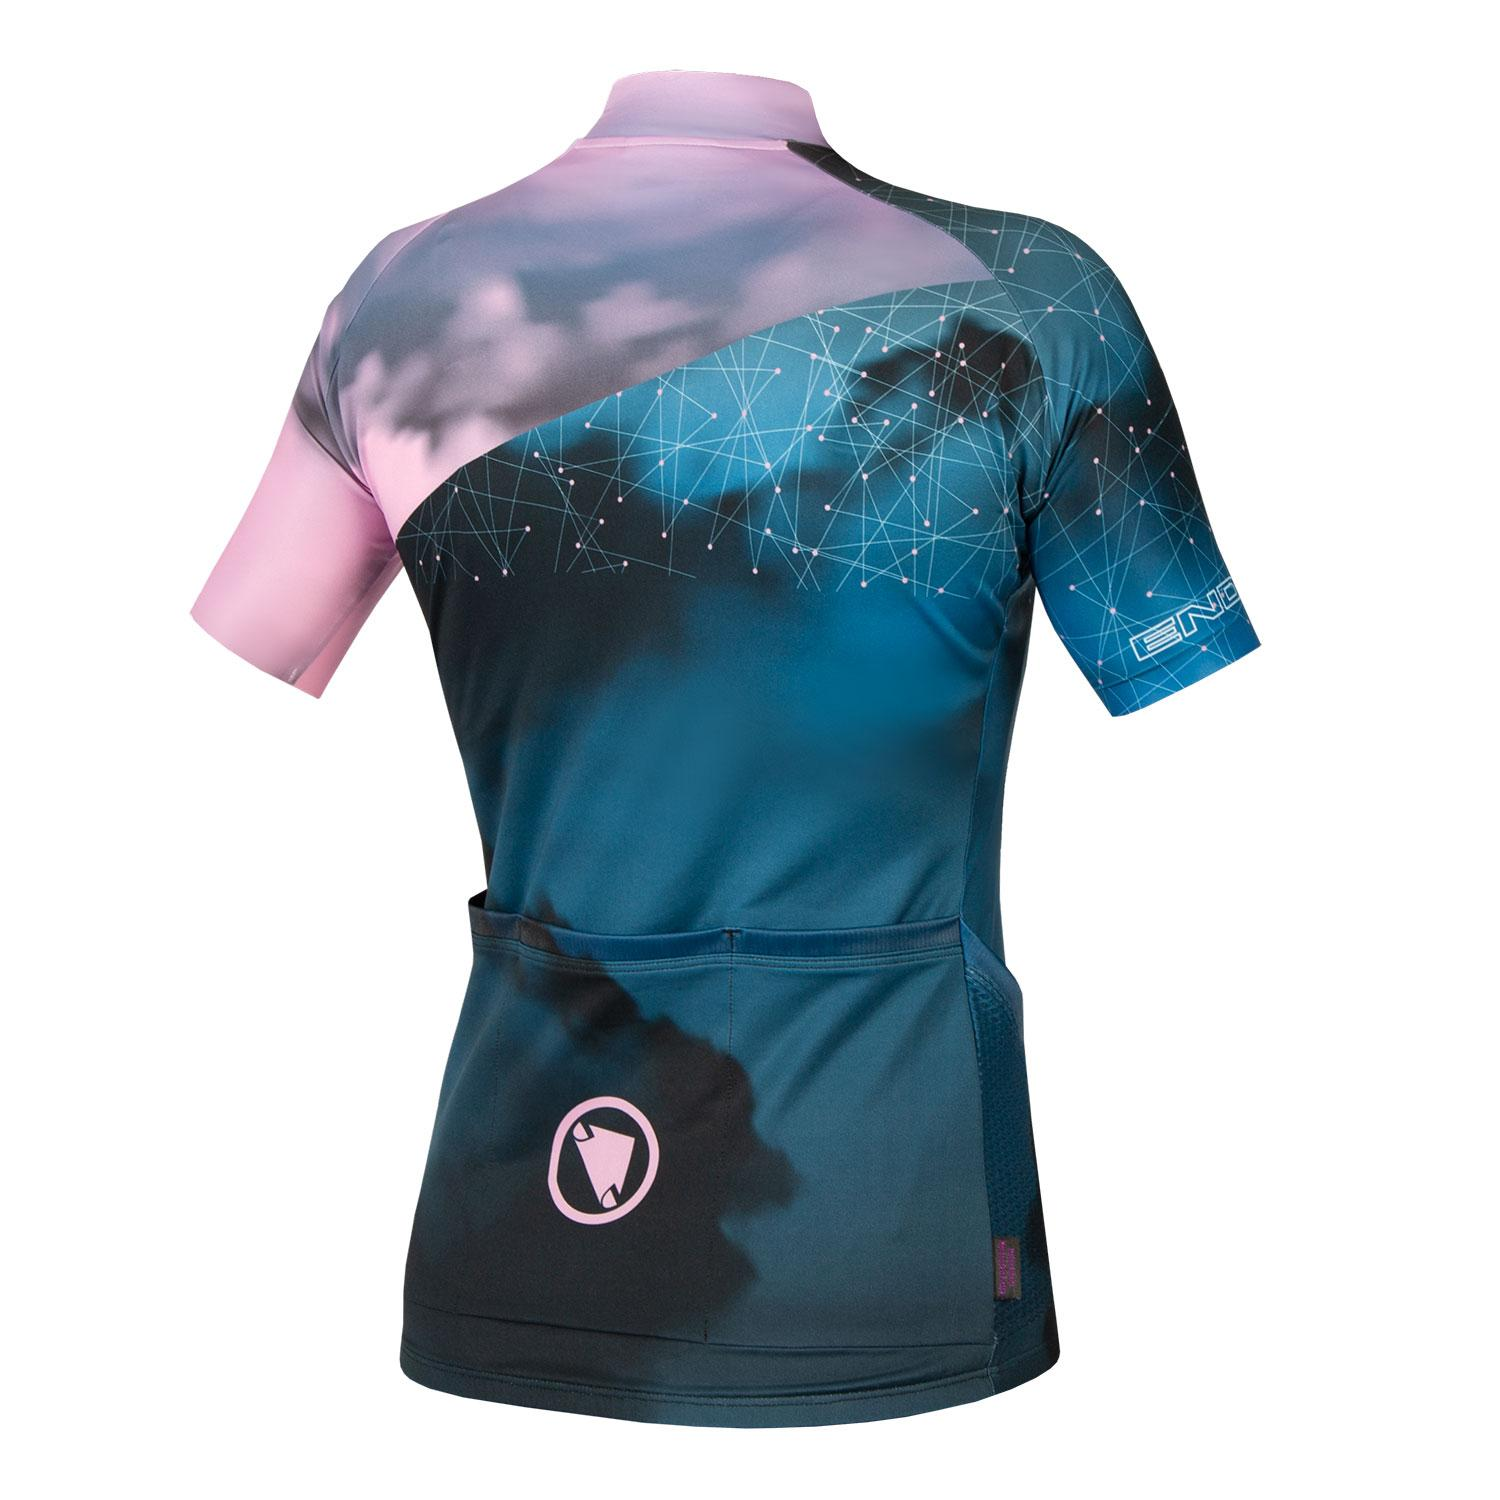 Endura Wielershirt Korte Mouwen voor Dames Blauw / Women's Cloud S/S Jersey LTD Blue